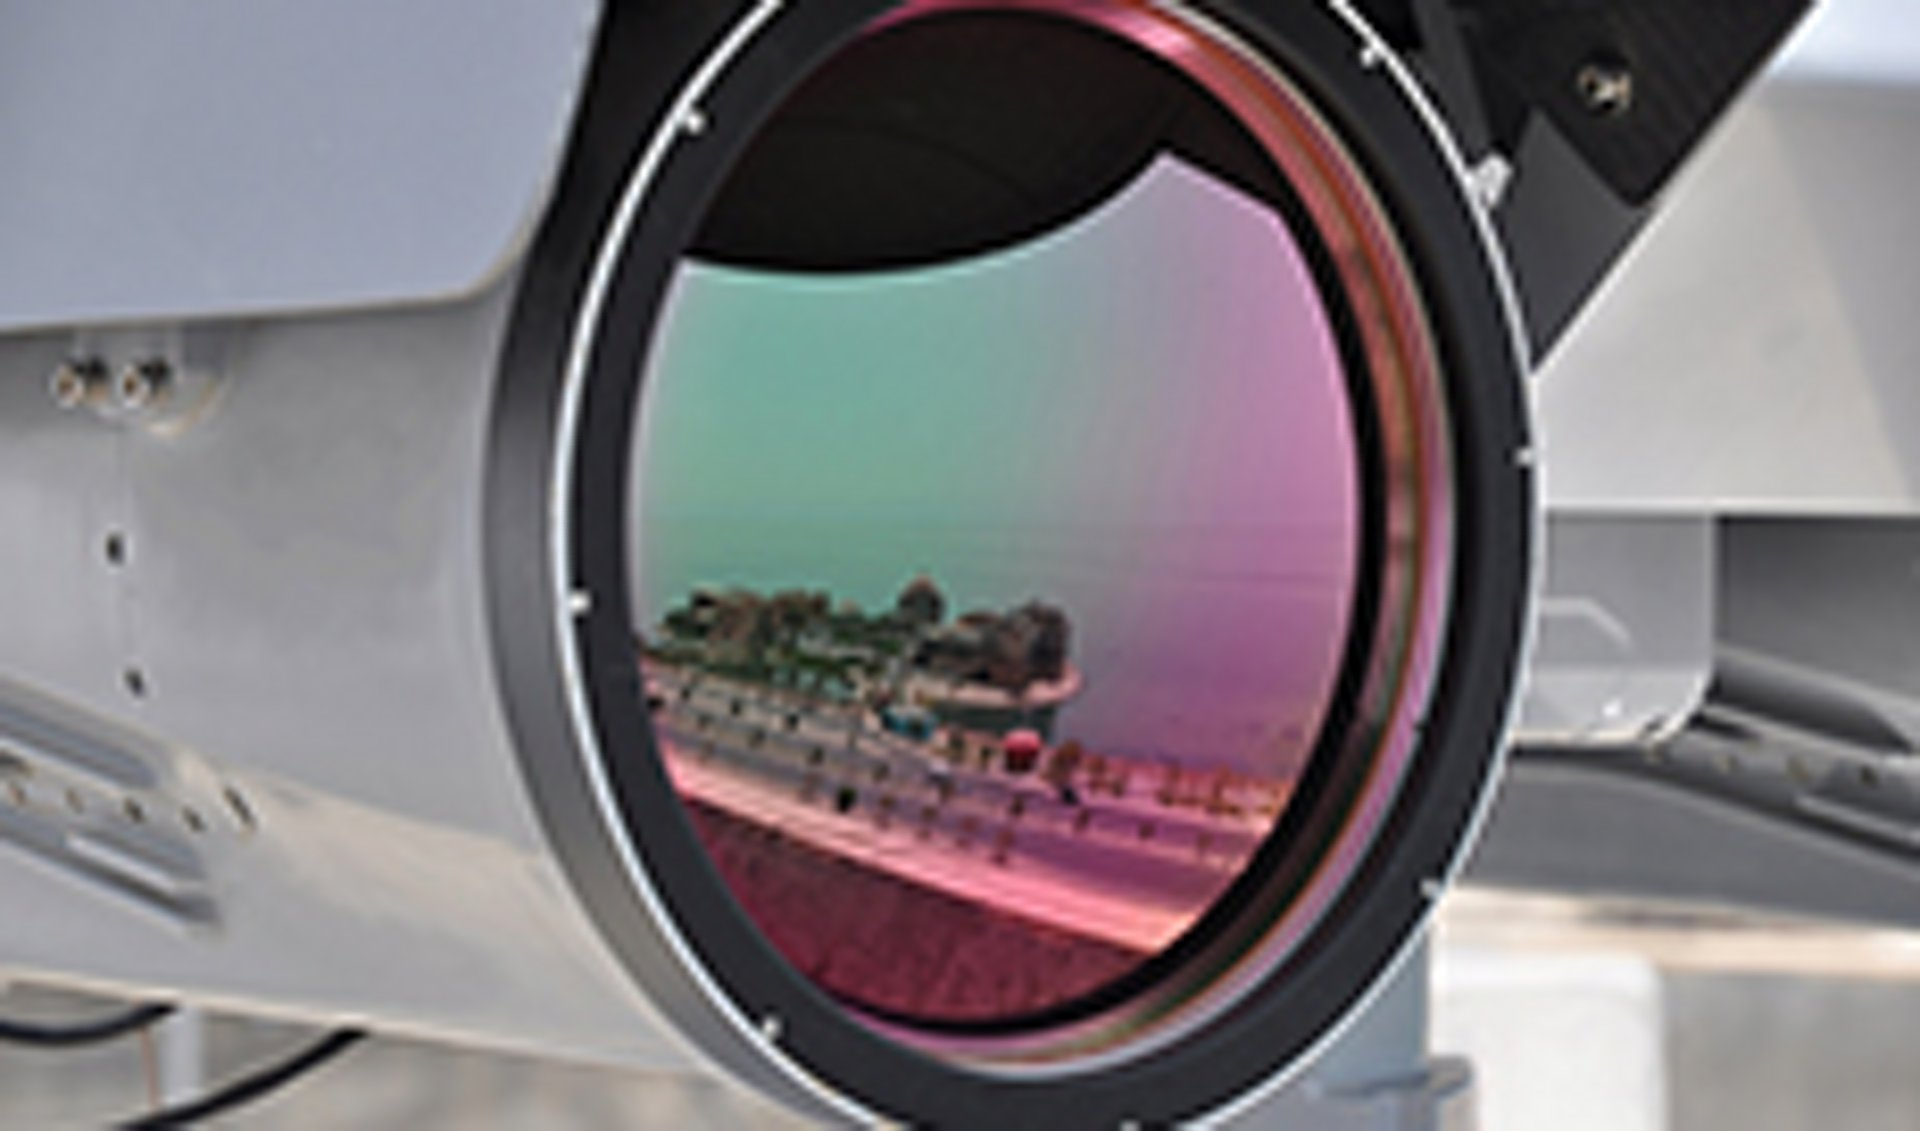 Z:NightOwl M combined opto-electronic and infrared imaging systems